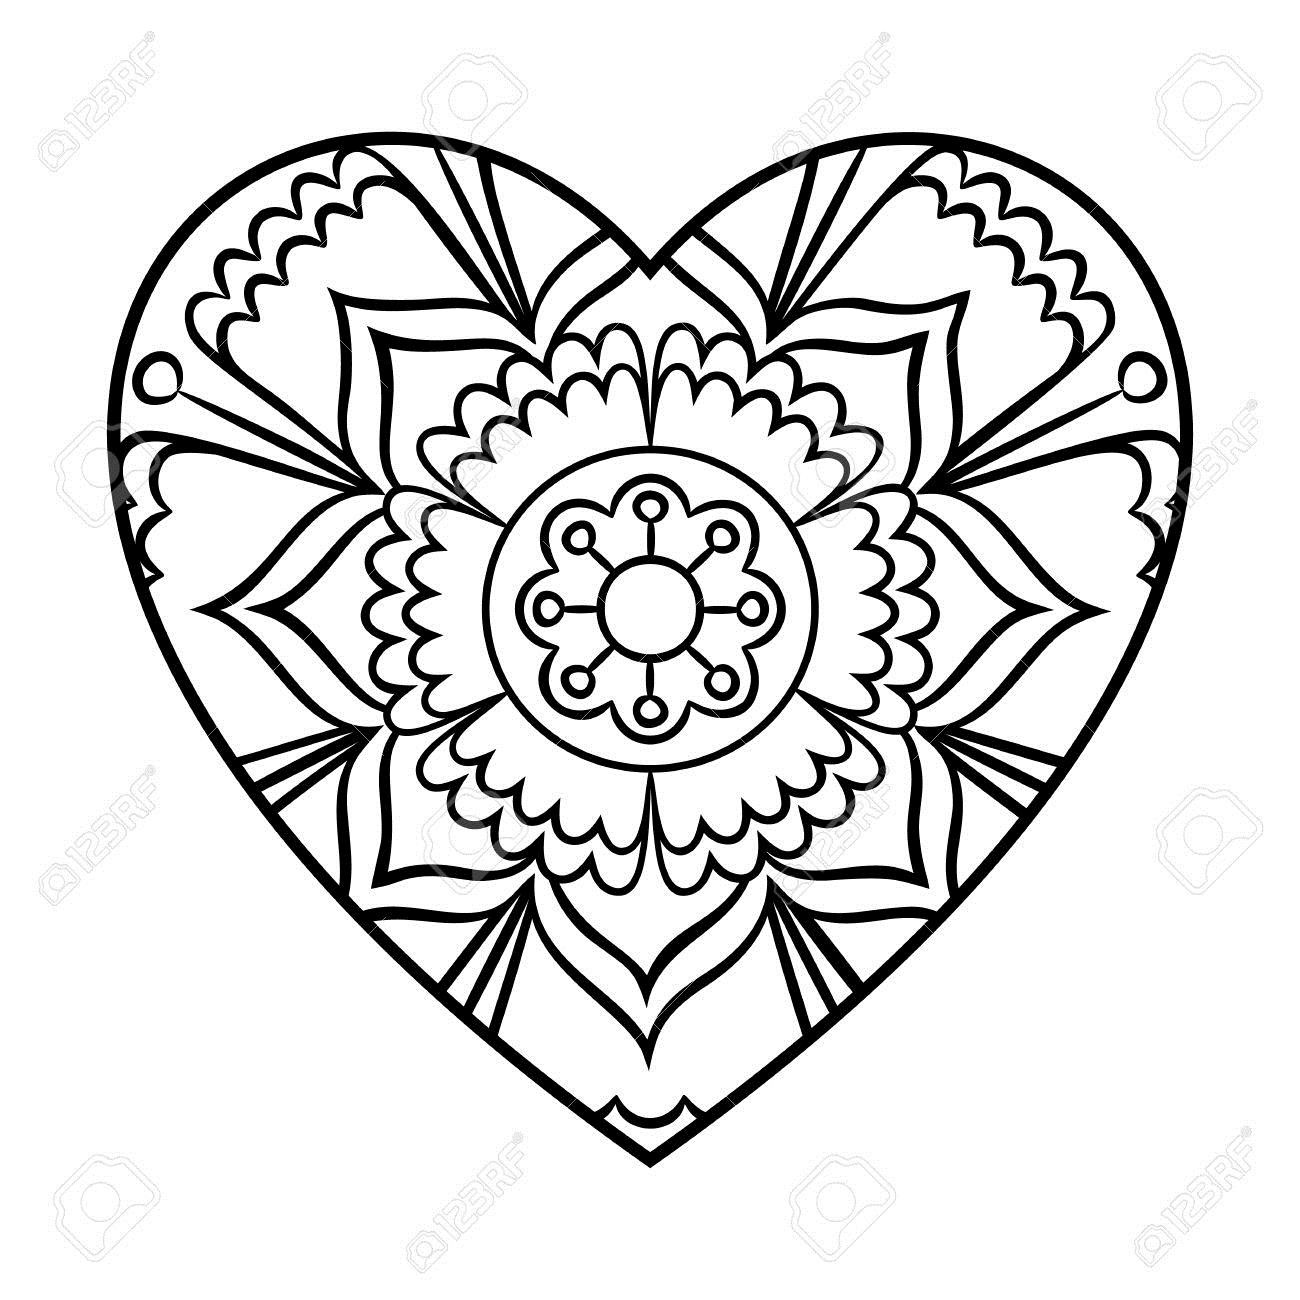 61096847-Doodle-Heart-Mandala-Coloring-Page-Outline-Floral-Design-Element-Stock-Photo